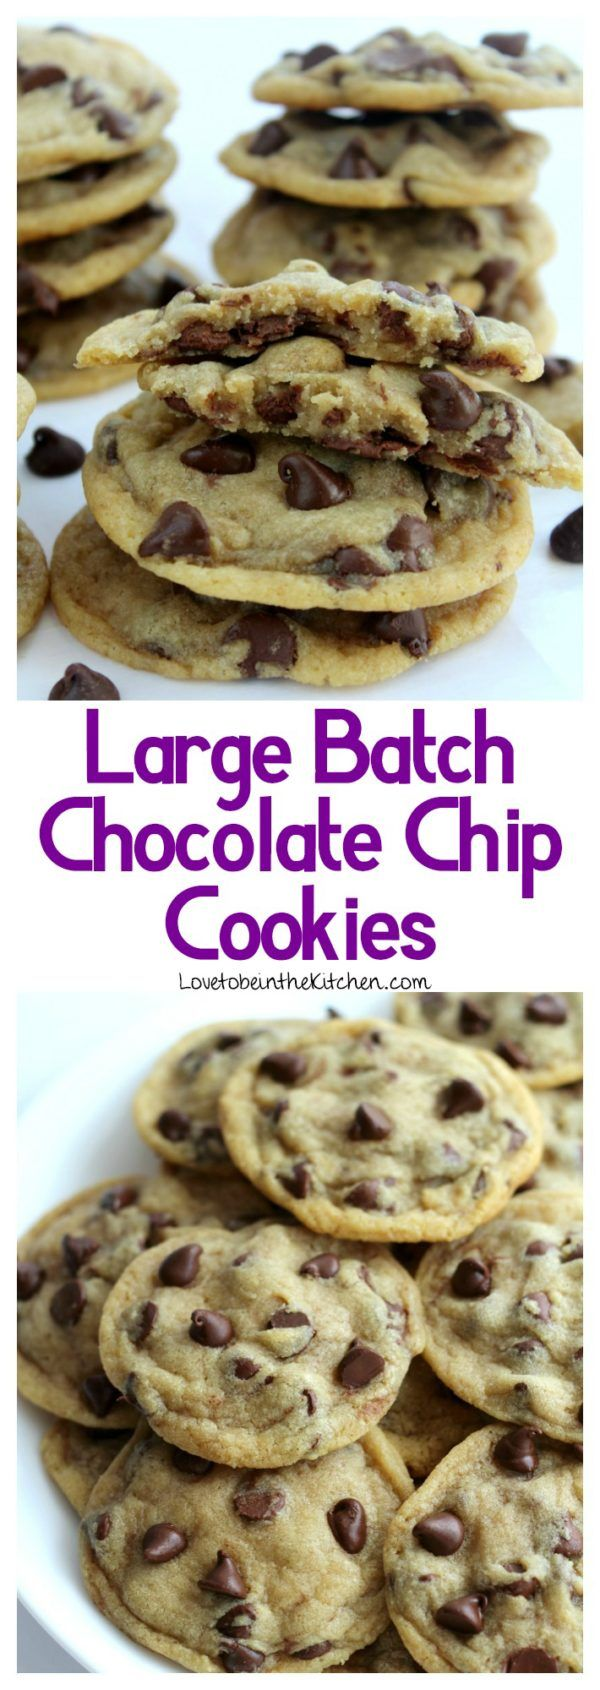 Large Batch Chocolate Chip Cookies - Love to be in the Kitchen